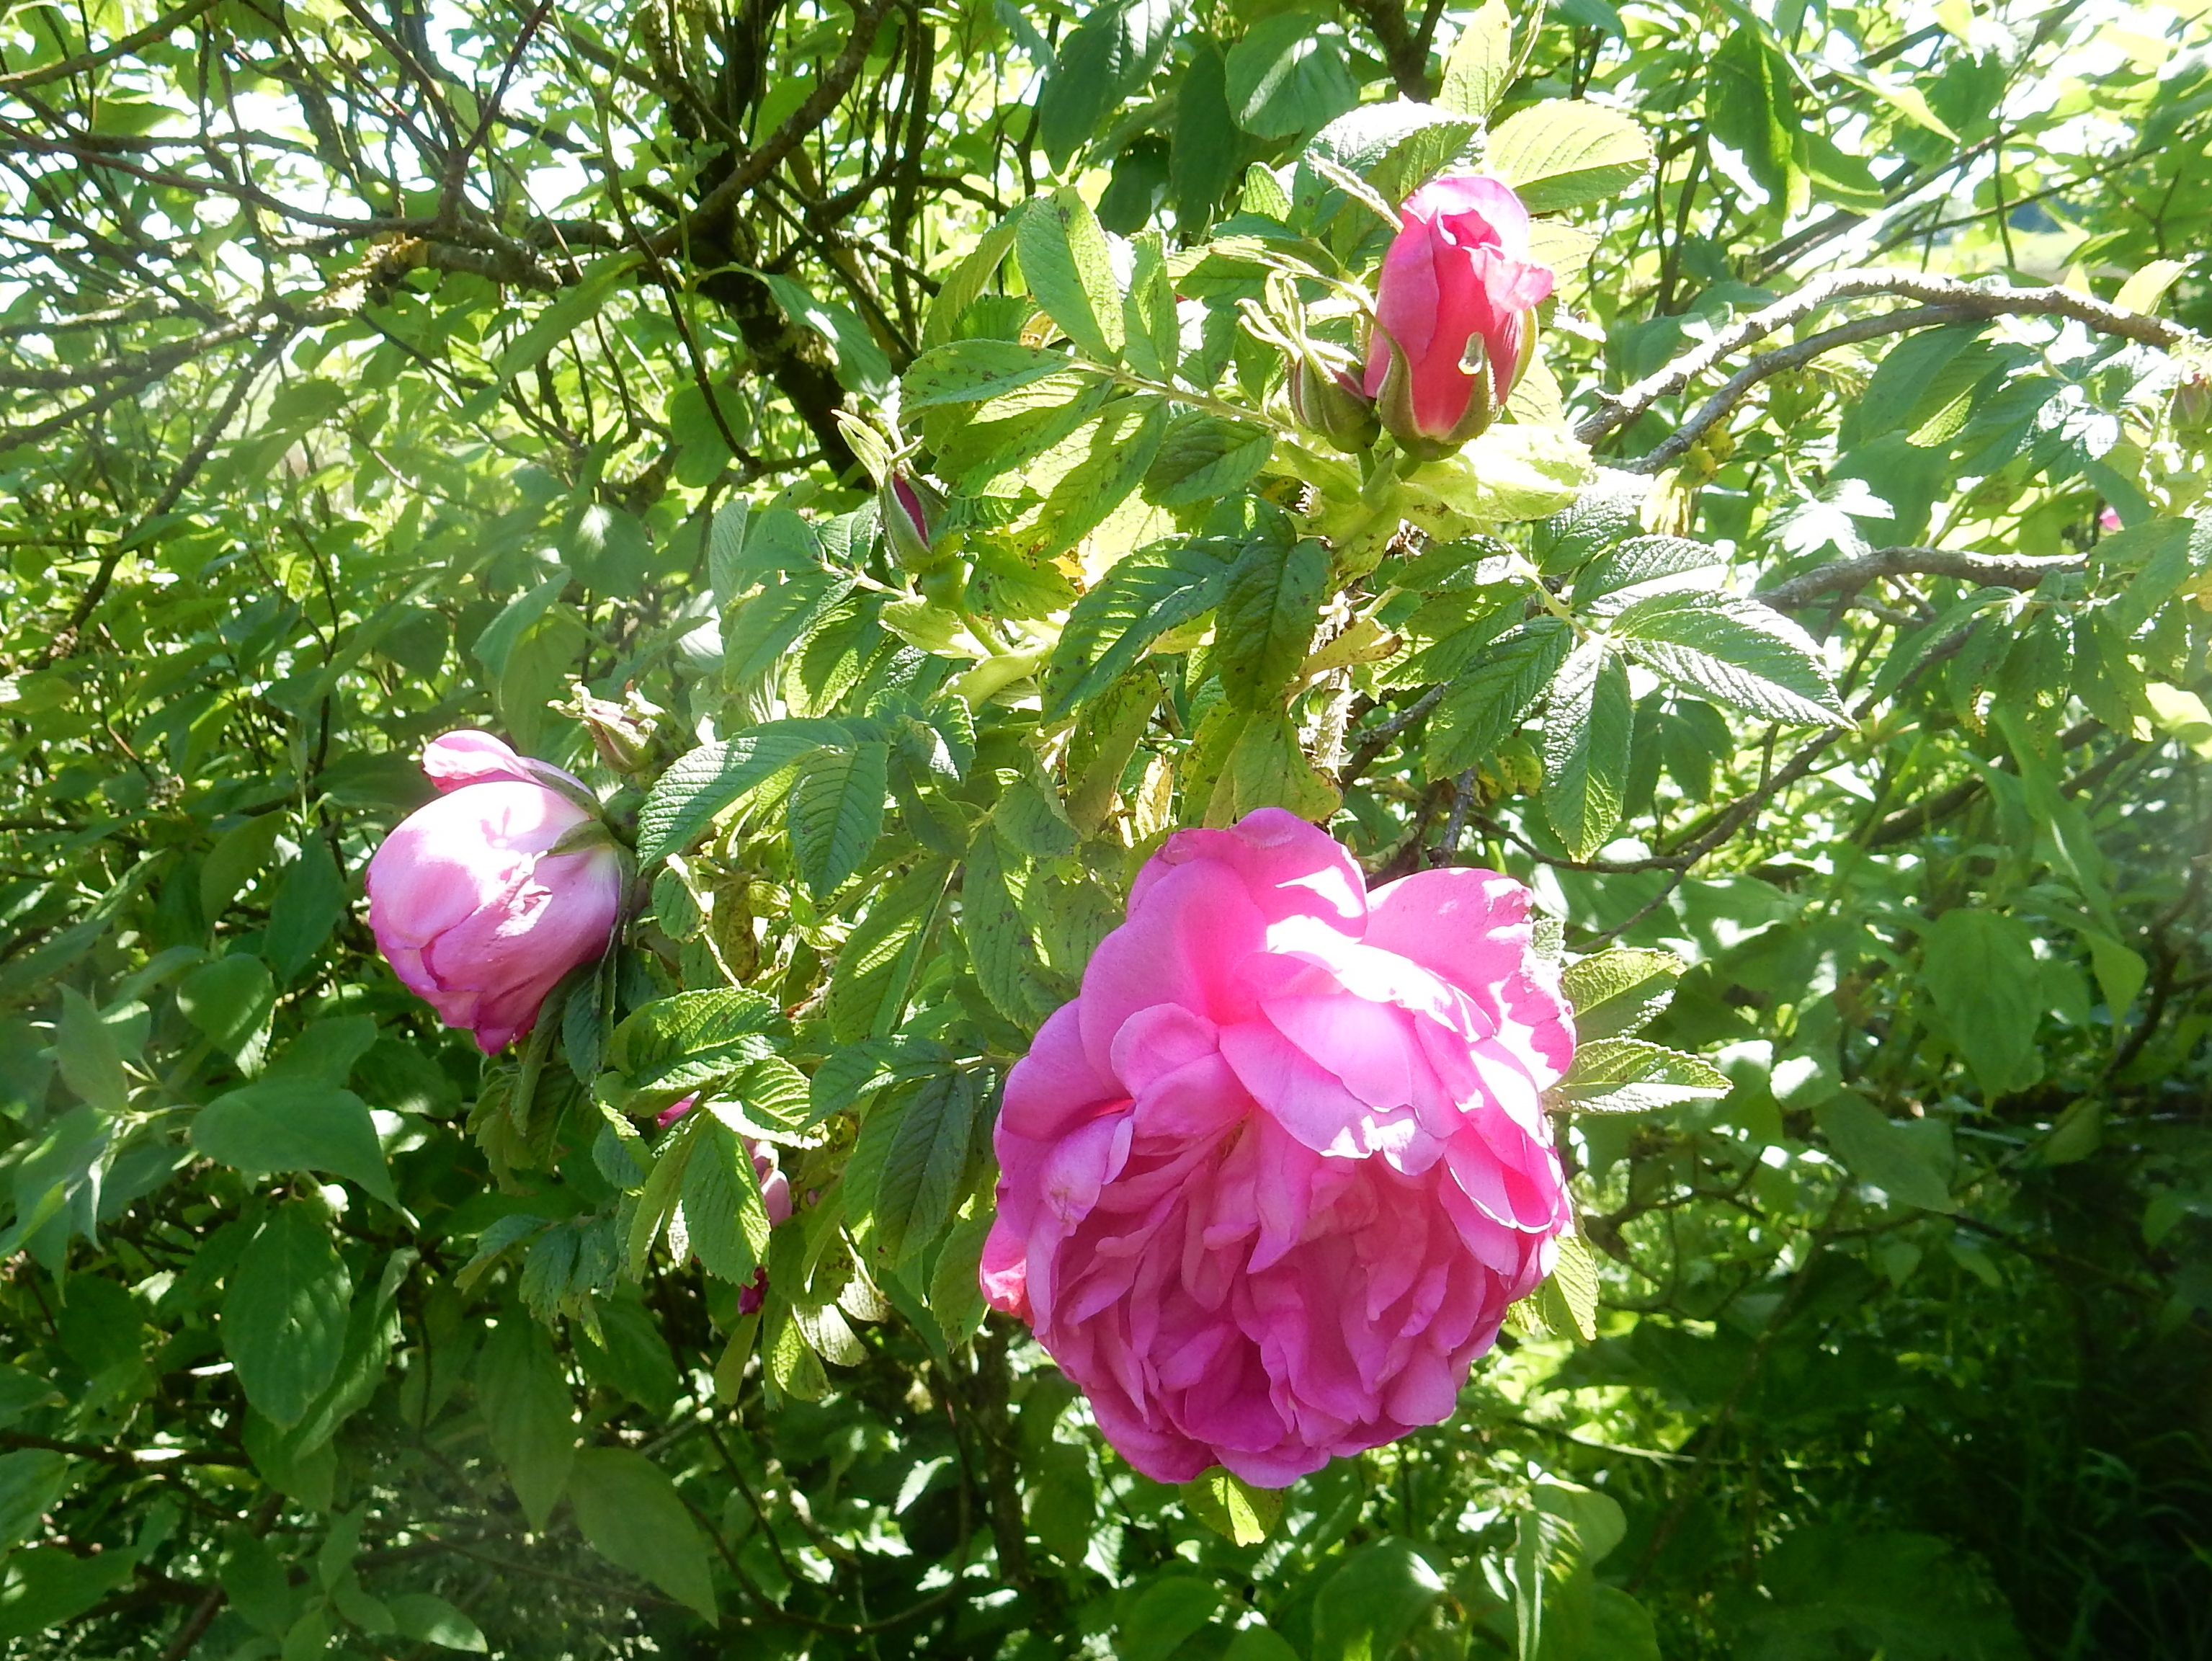 I Grew This One From A Mixed Packet Of Species Roses Reble Seed Er